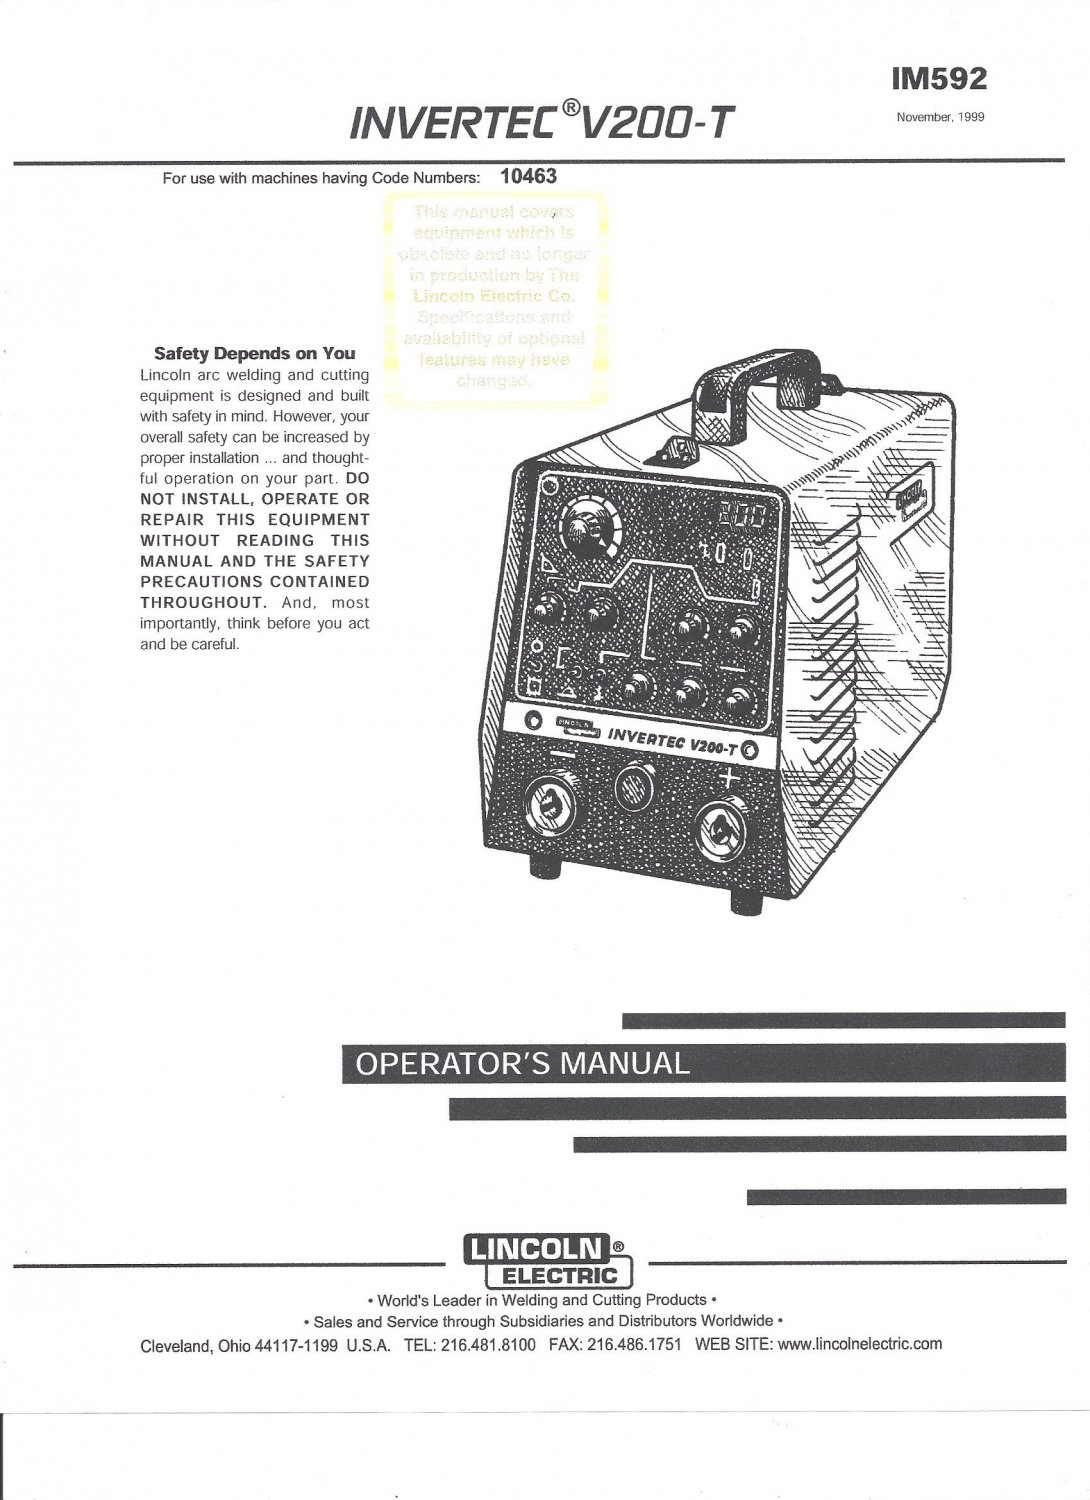 Lincoln Electric INVERTEC V200-T Welder Operator's Manual